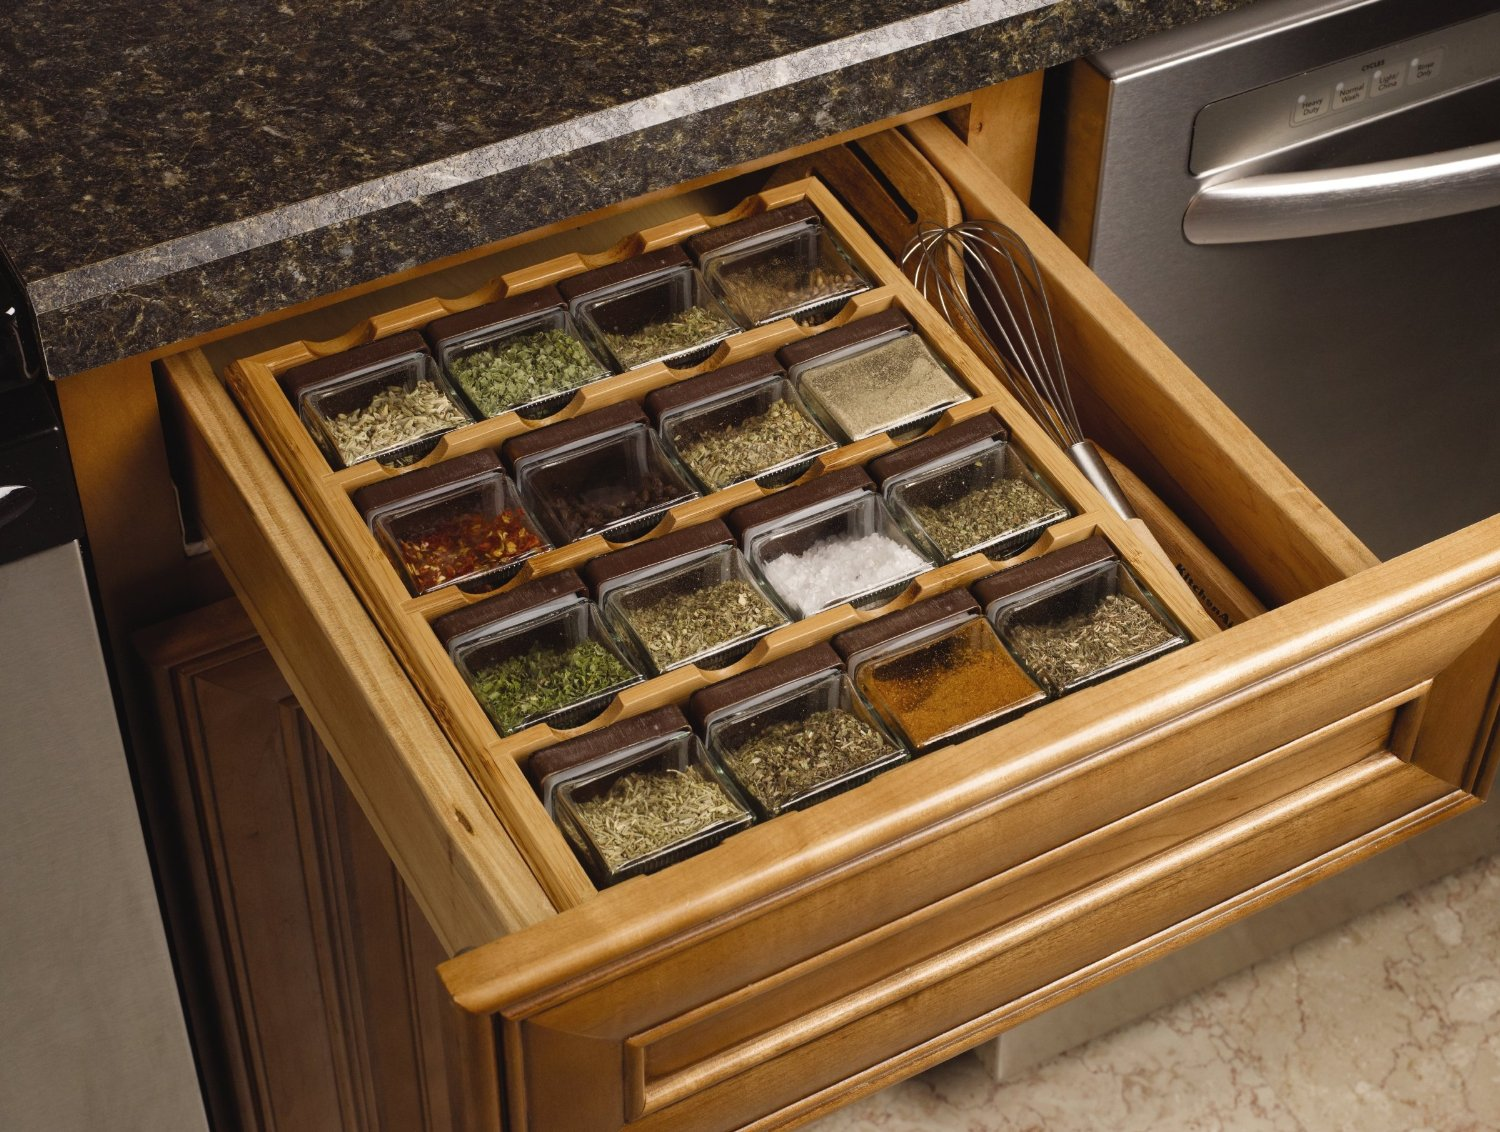 Cube Drawer Spice Rack